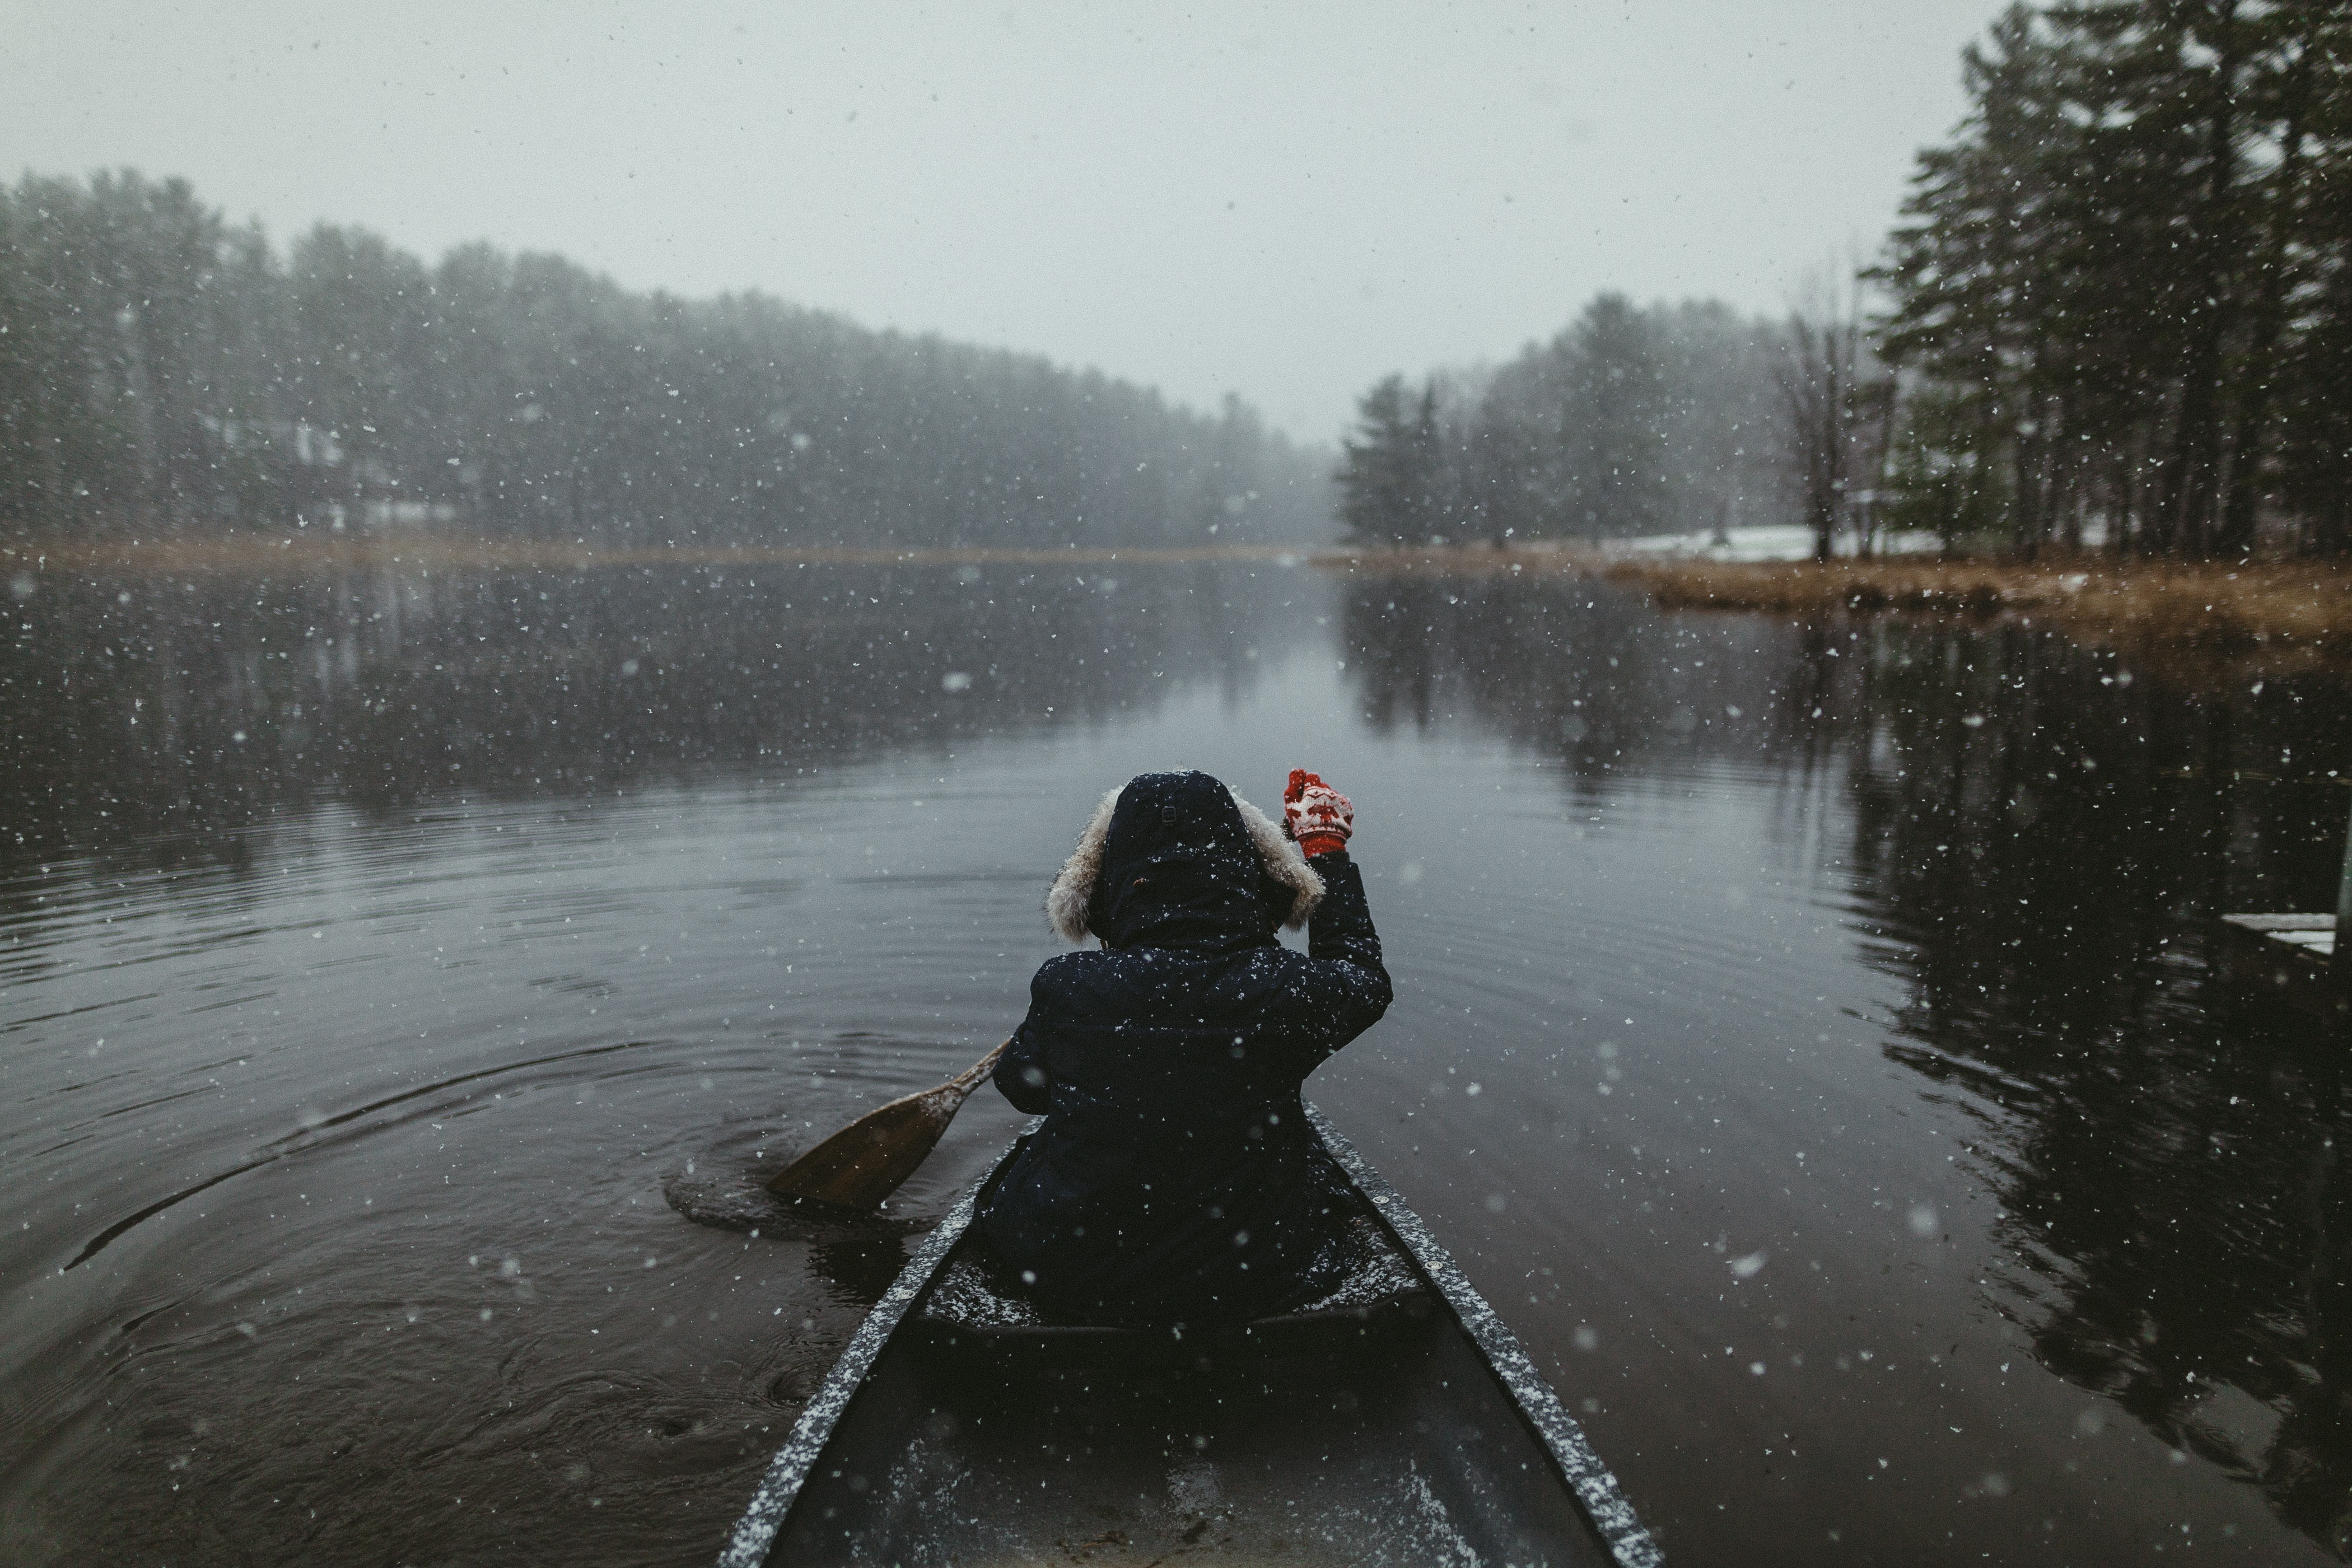 A woman wearing a jacket with a fur hood rowing her canoe through the waters at the Adirondack Mountains